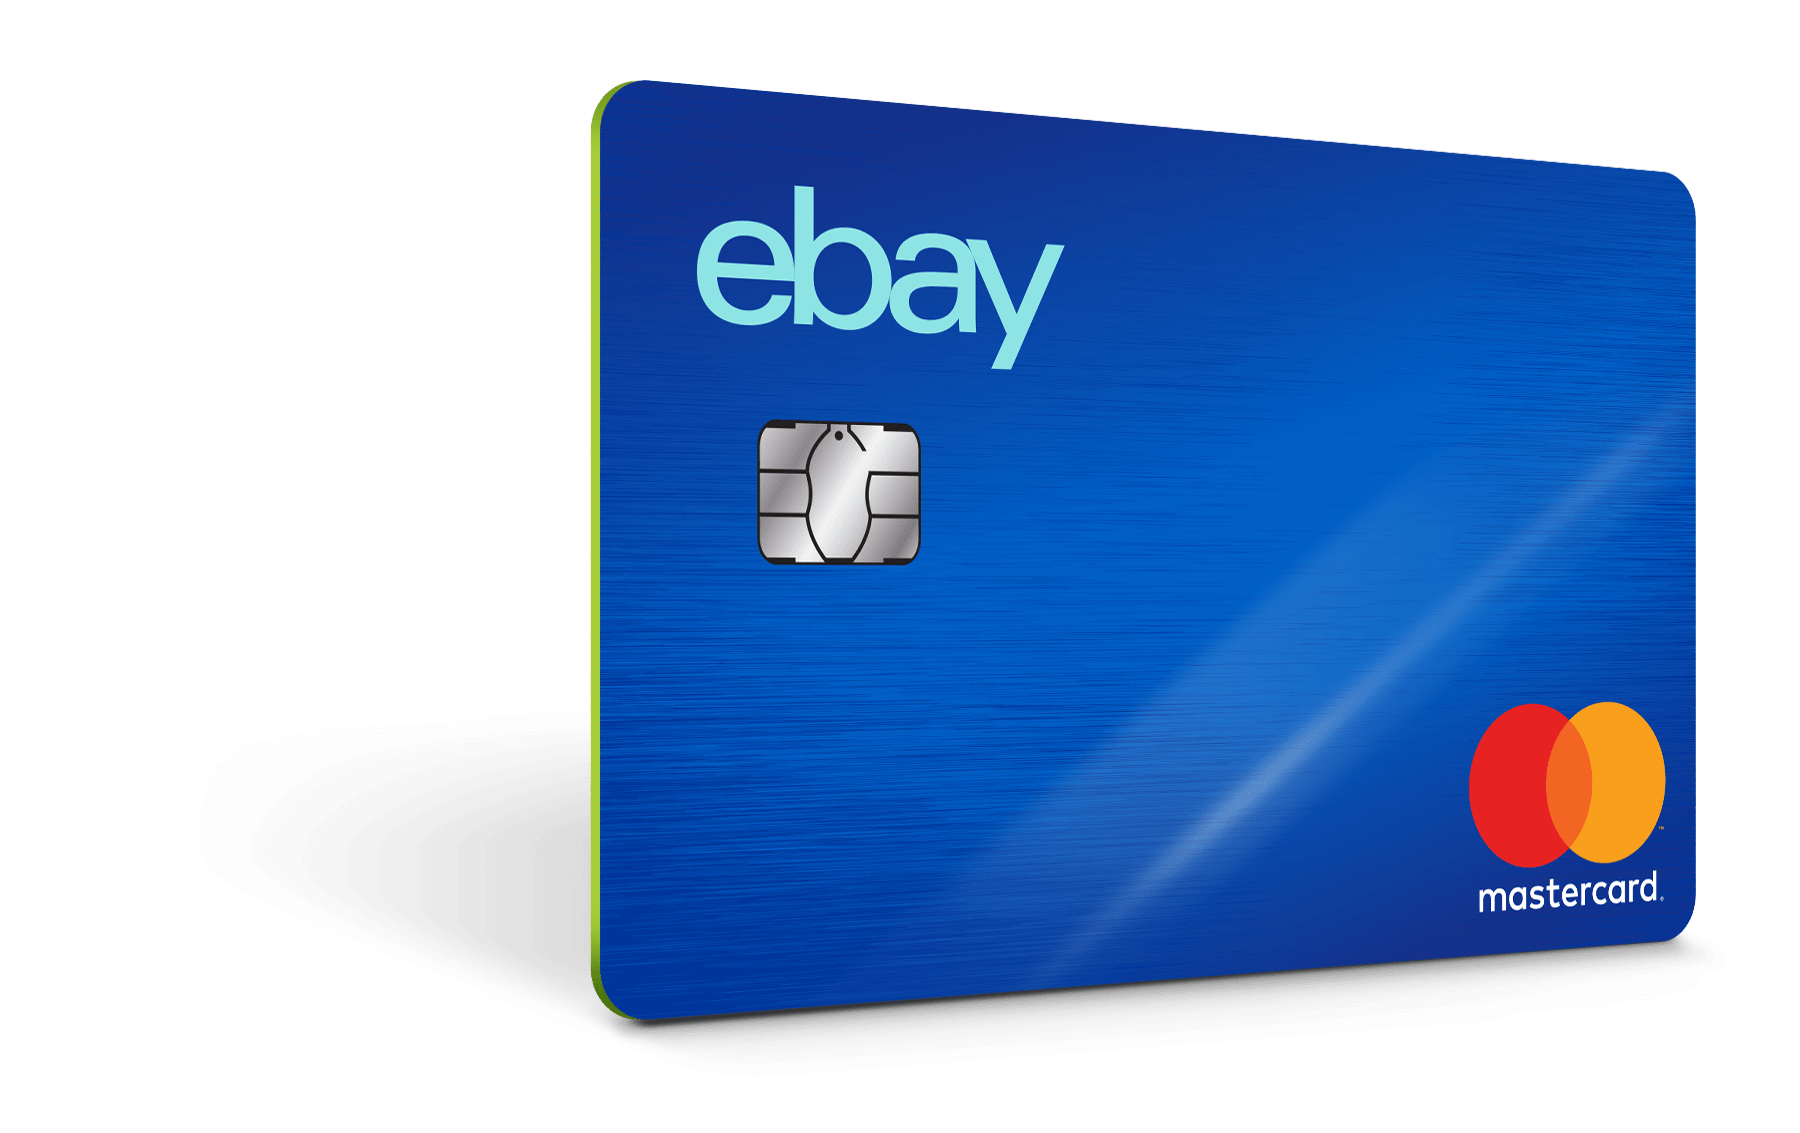 Synchrony Bank Credit Cards >> Ebay Mastercard Review 50 Bonus And 3 35x On Ebay Purchases